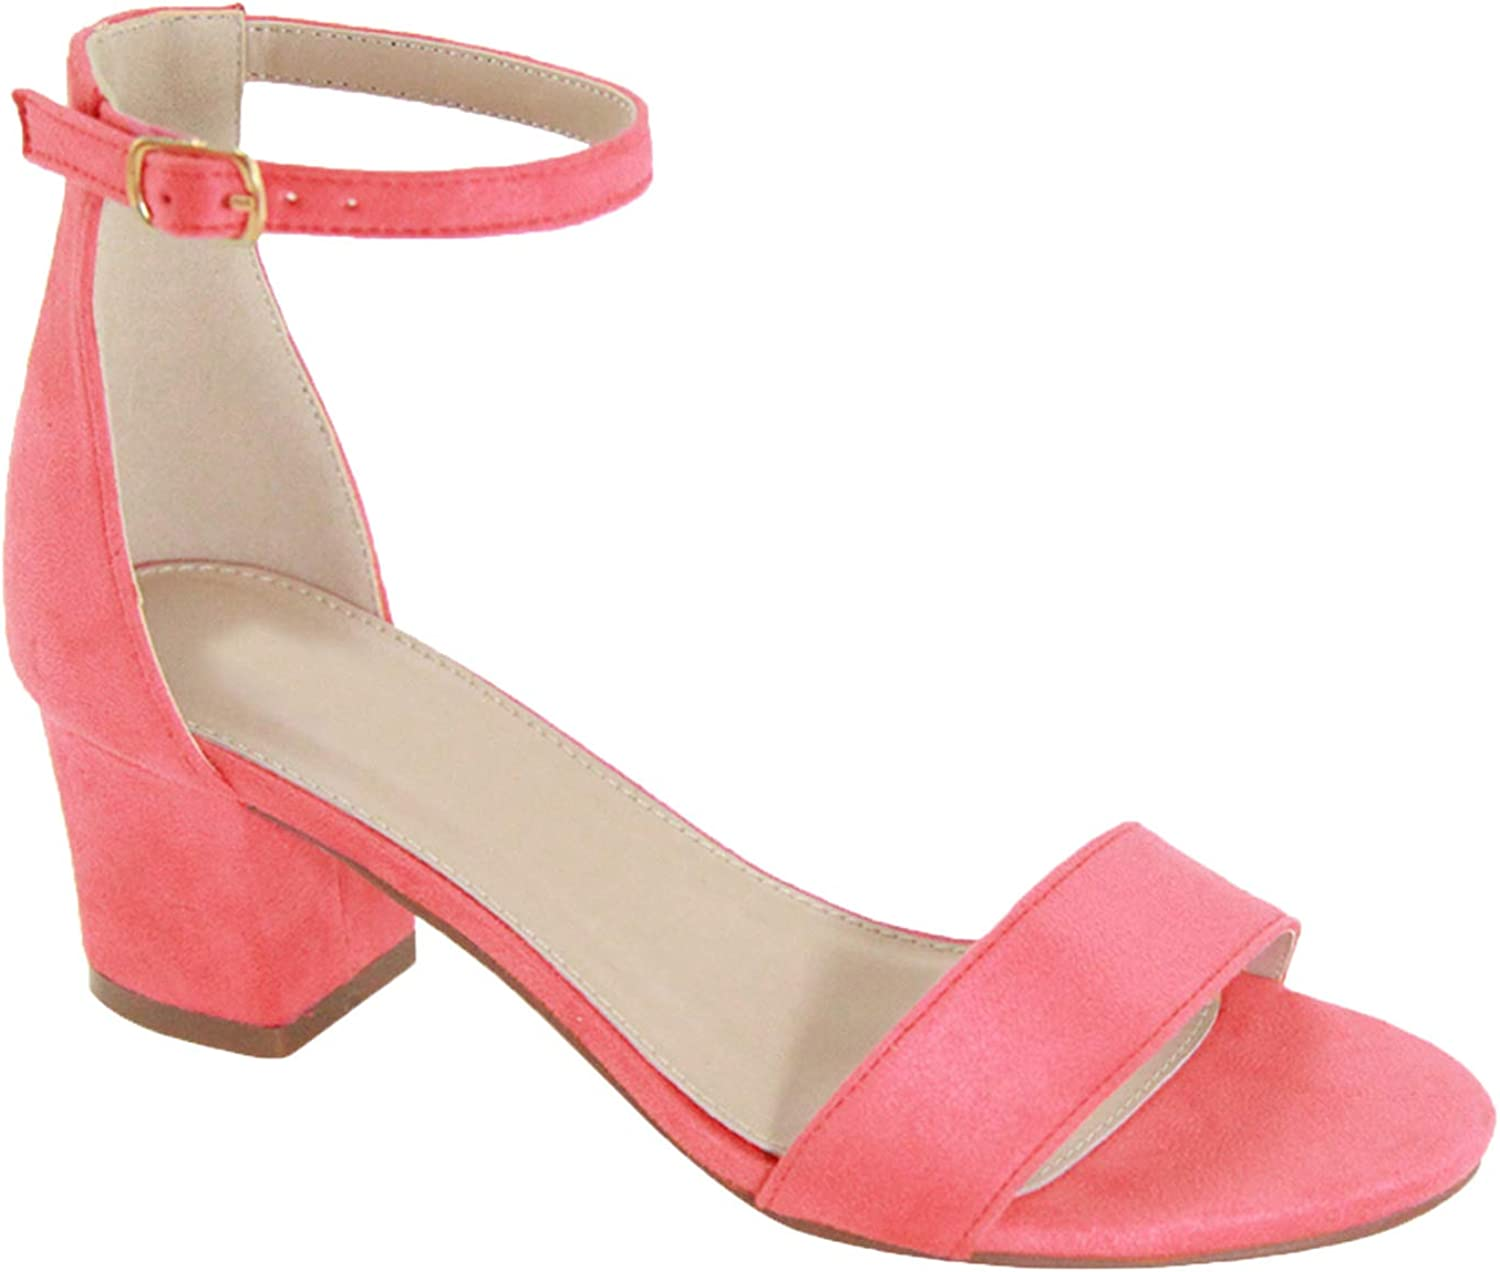 Trends SNJ Women's Year-end annual account Ankle favorite Buckle Stappy Block Open Toe Chunky Mid